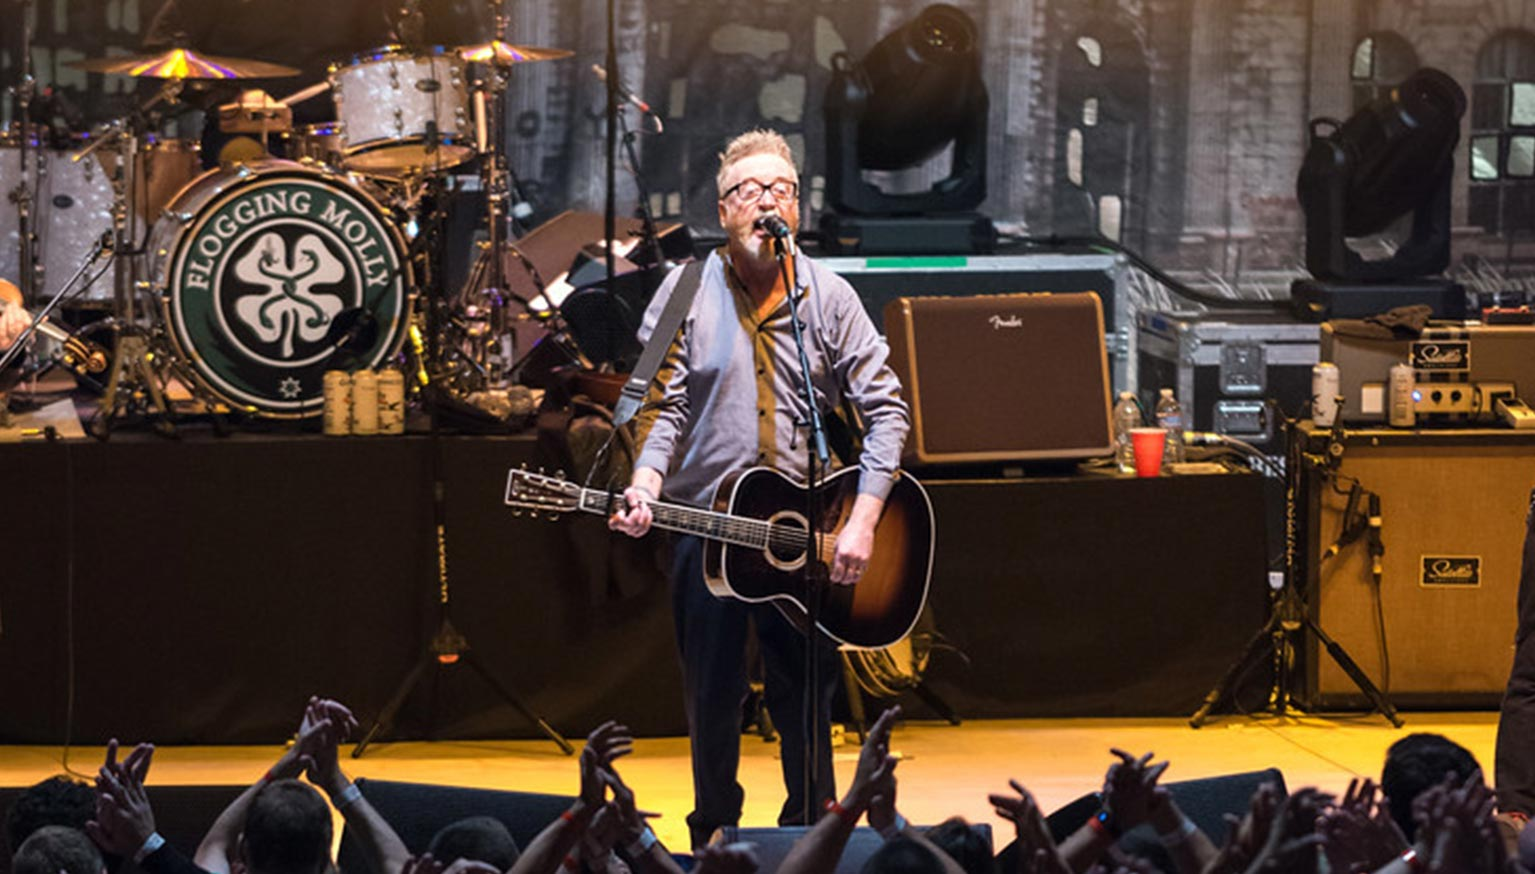 Singer of Flogging Molly on stage